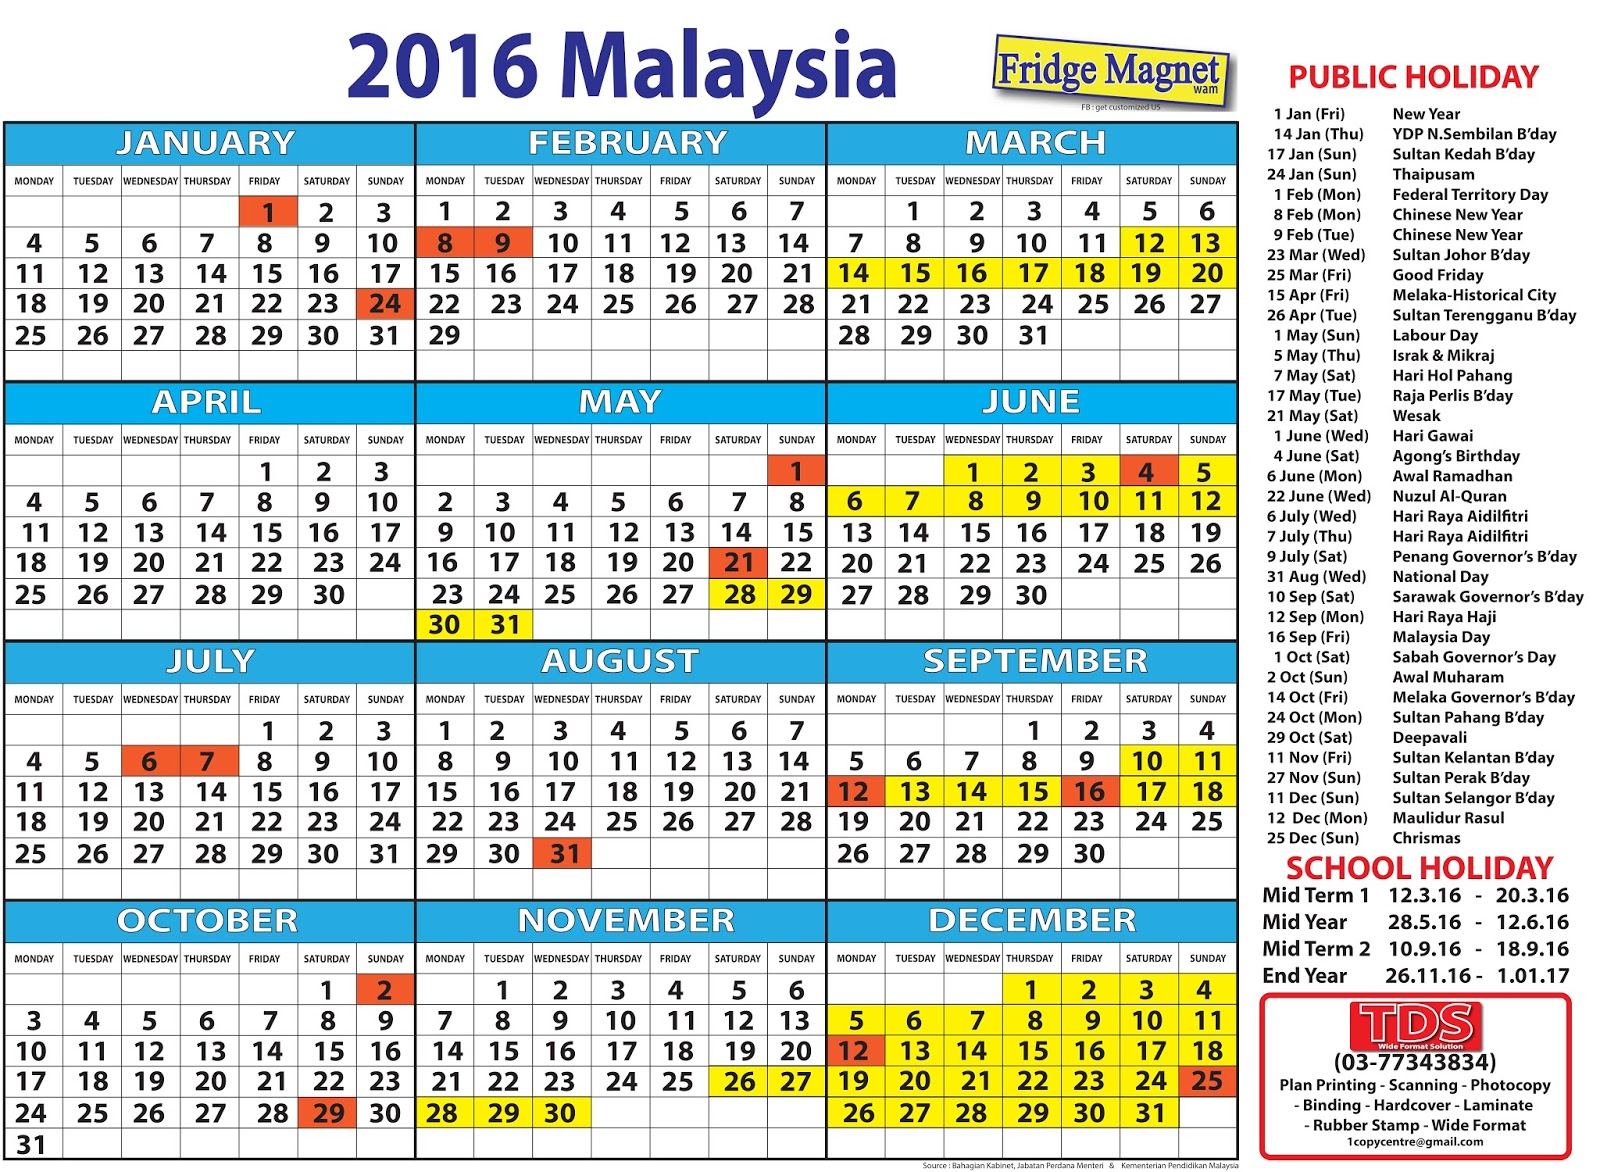 public holidays in singapore and malaysia relationship